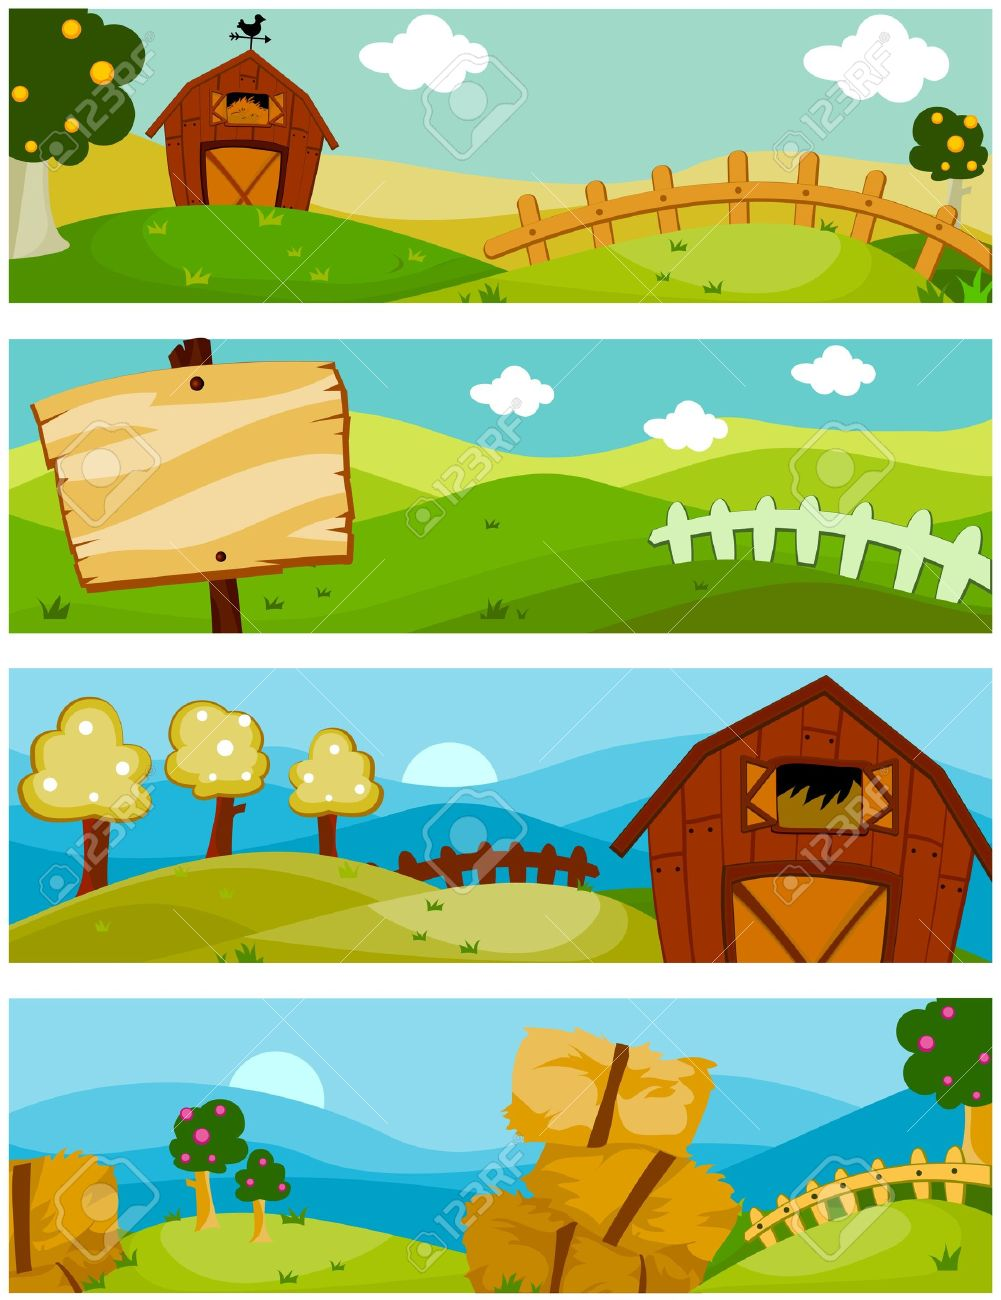 Farm Fence Clipart farm fence stock photos. royalty free farm fence images and pictures